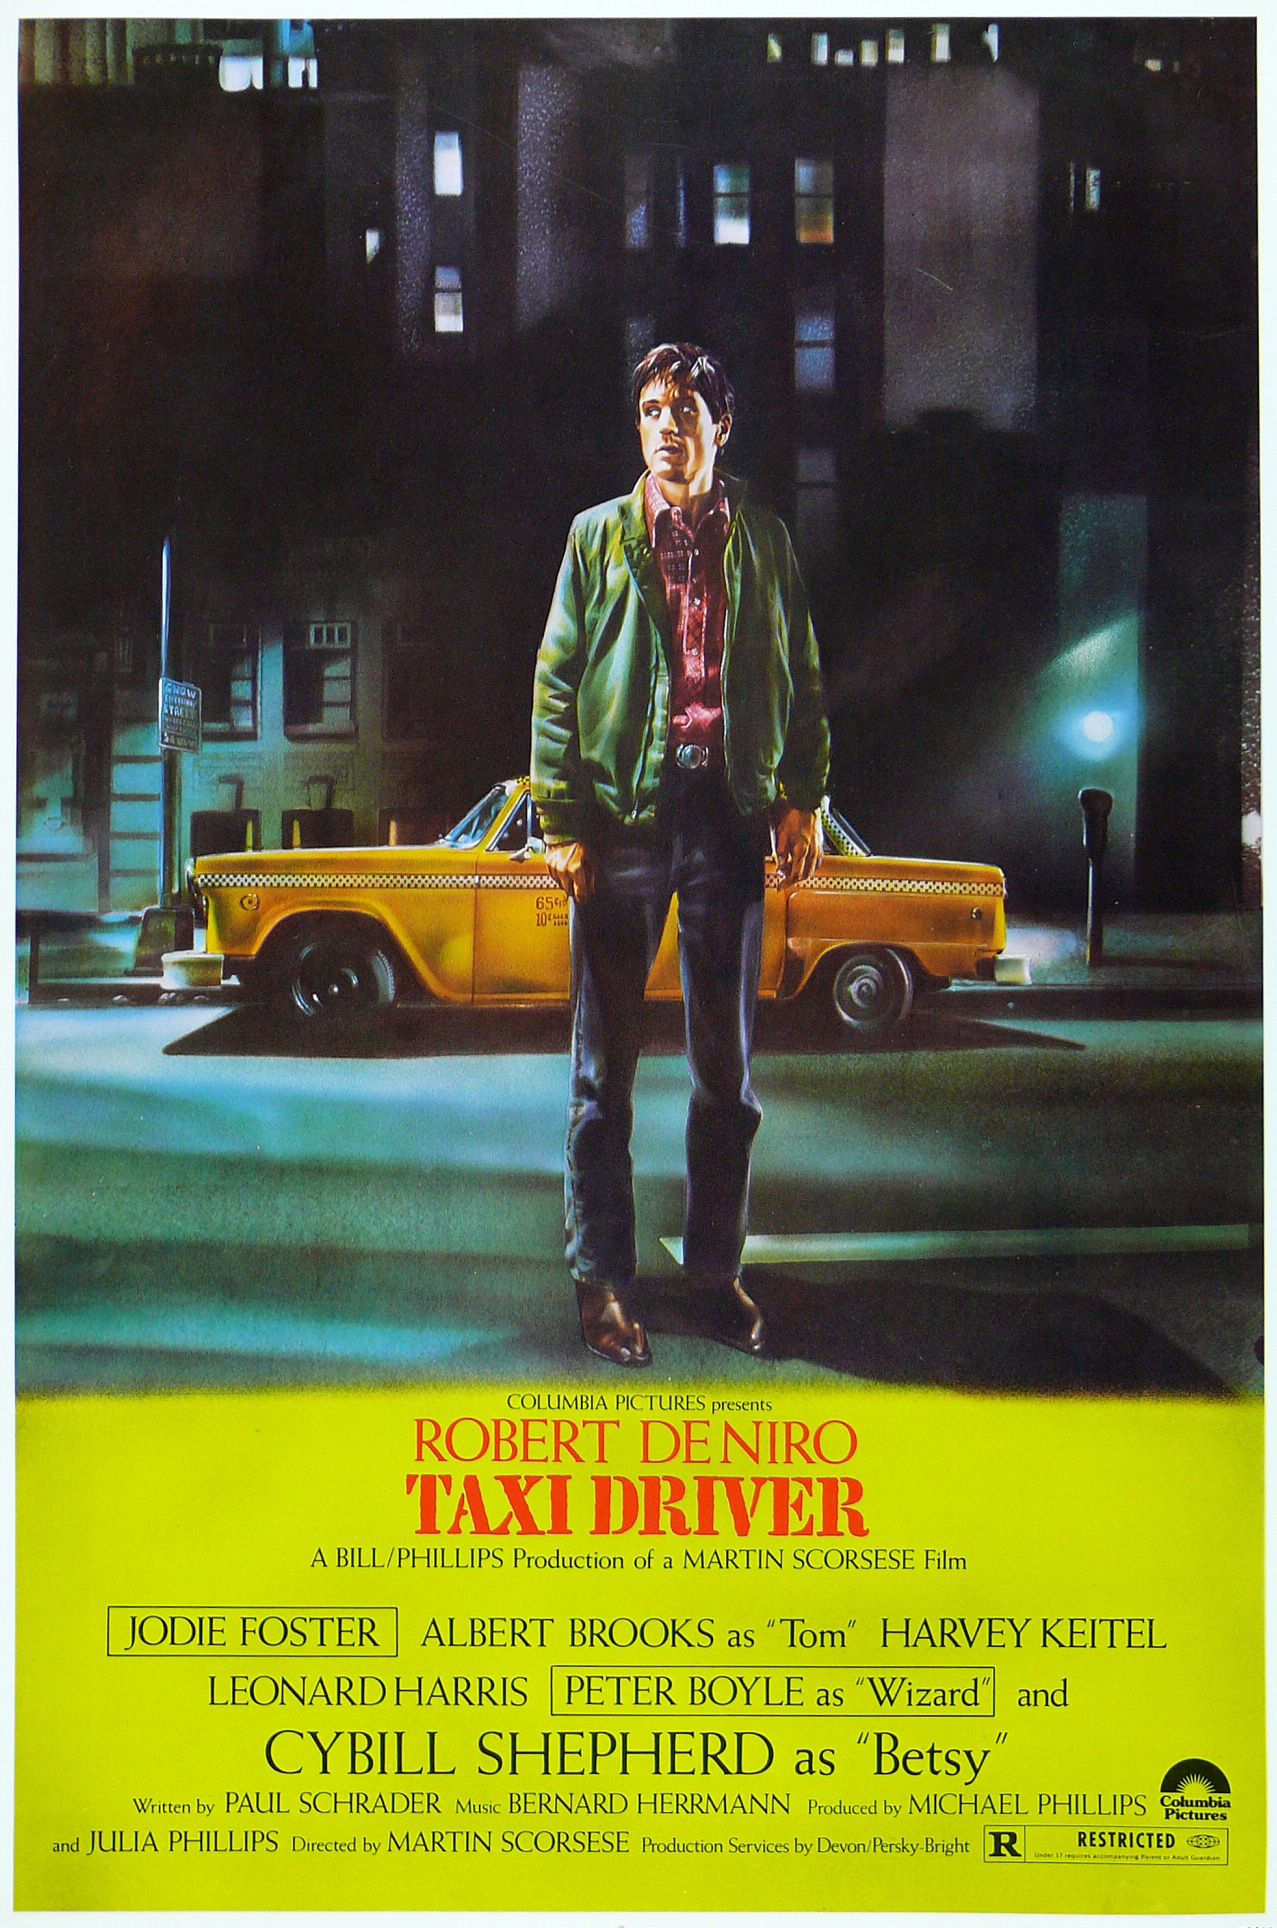 In 1976, fresh off the success of  Rock Dreams  and several high-profile rock collaborations, Peellaert was commissioned by director Martin Scorsese to create the poster artwork for  Taxi Driver.  The artist produced an indelible image of the once-gritty Manhattan streets ,  rife with a palpable sense of danger and social unrest, in which he superimposed his own body onto a portrait of Robert de Niro.